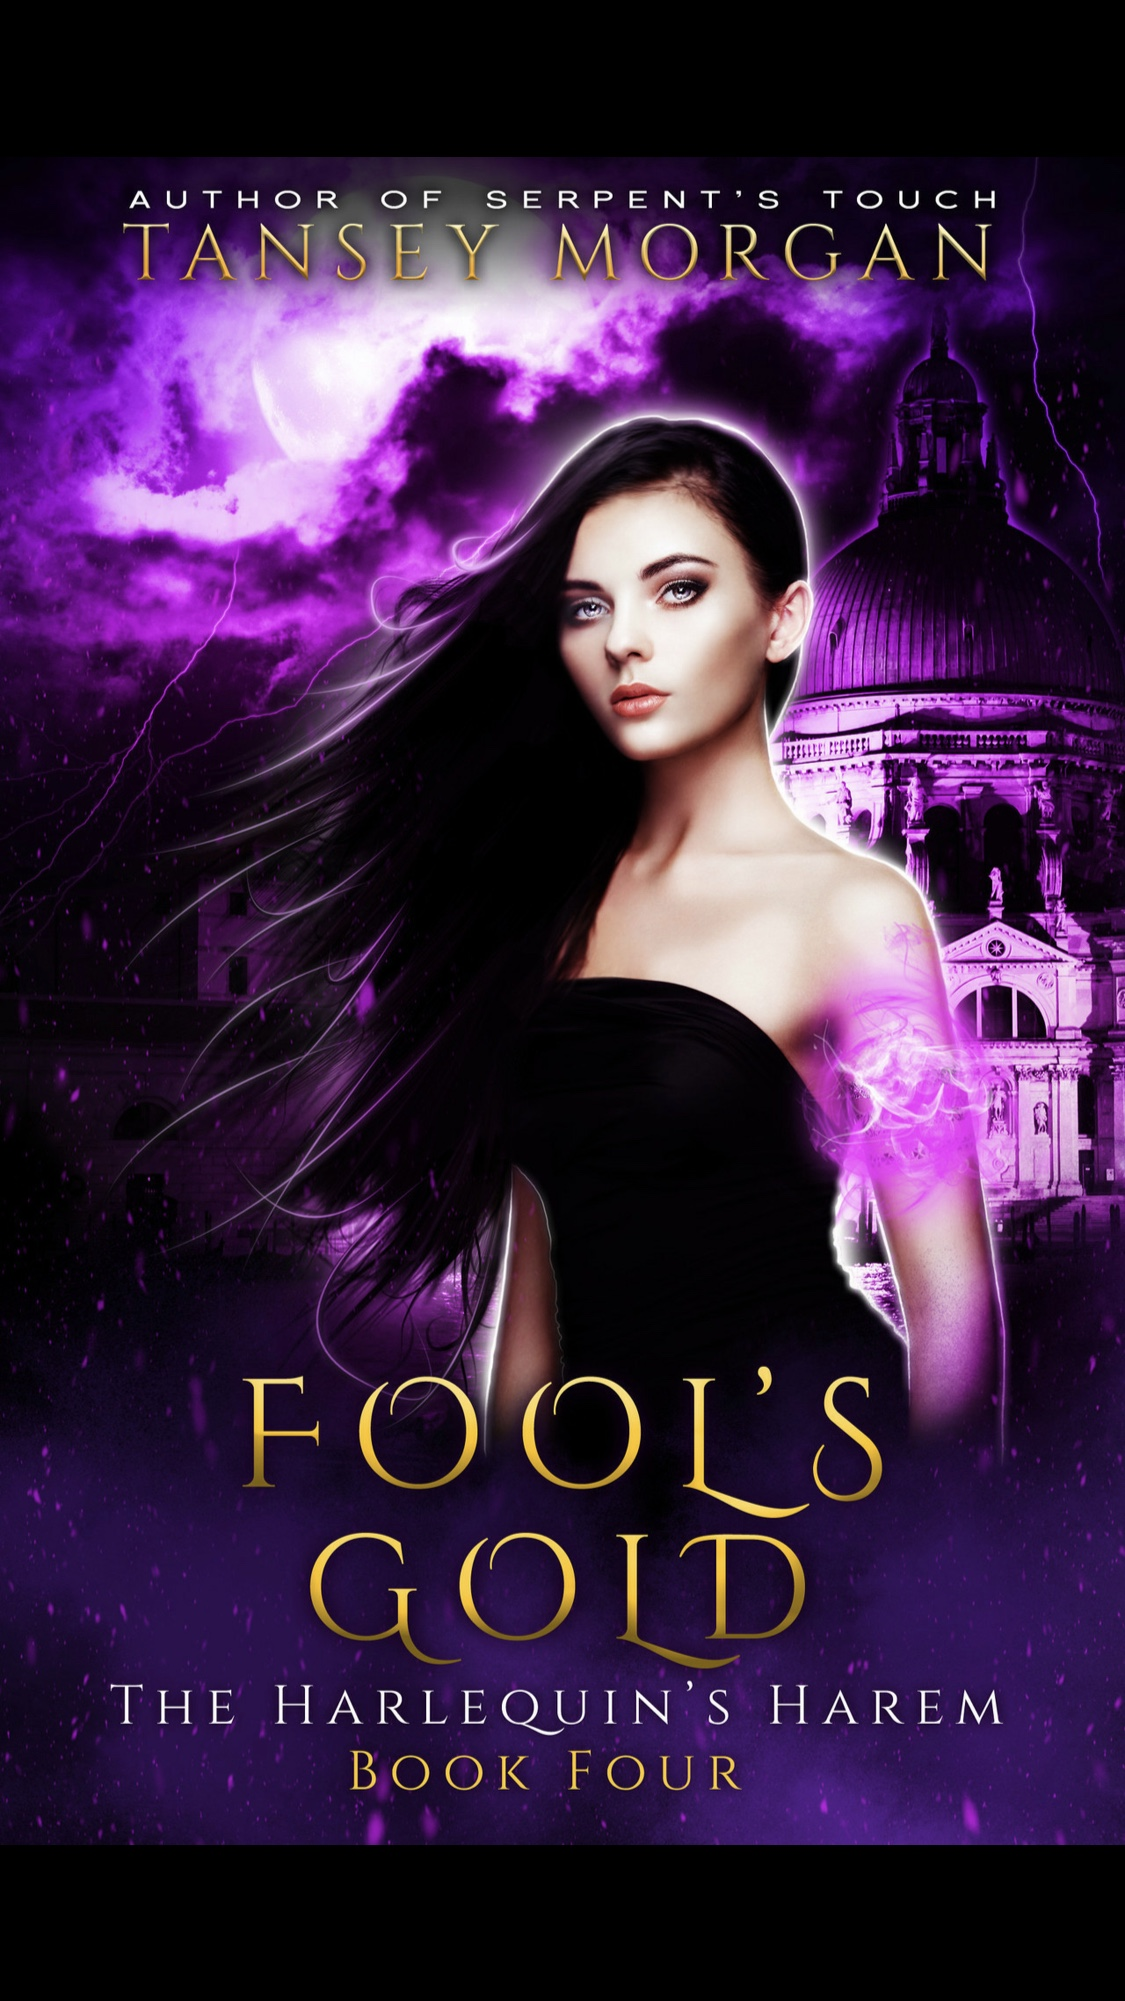 Book Review - Fool's Gold by Tansey Morgan, Book 4 in The Harlequin's Harem Series